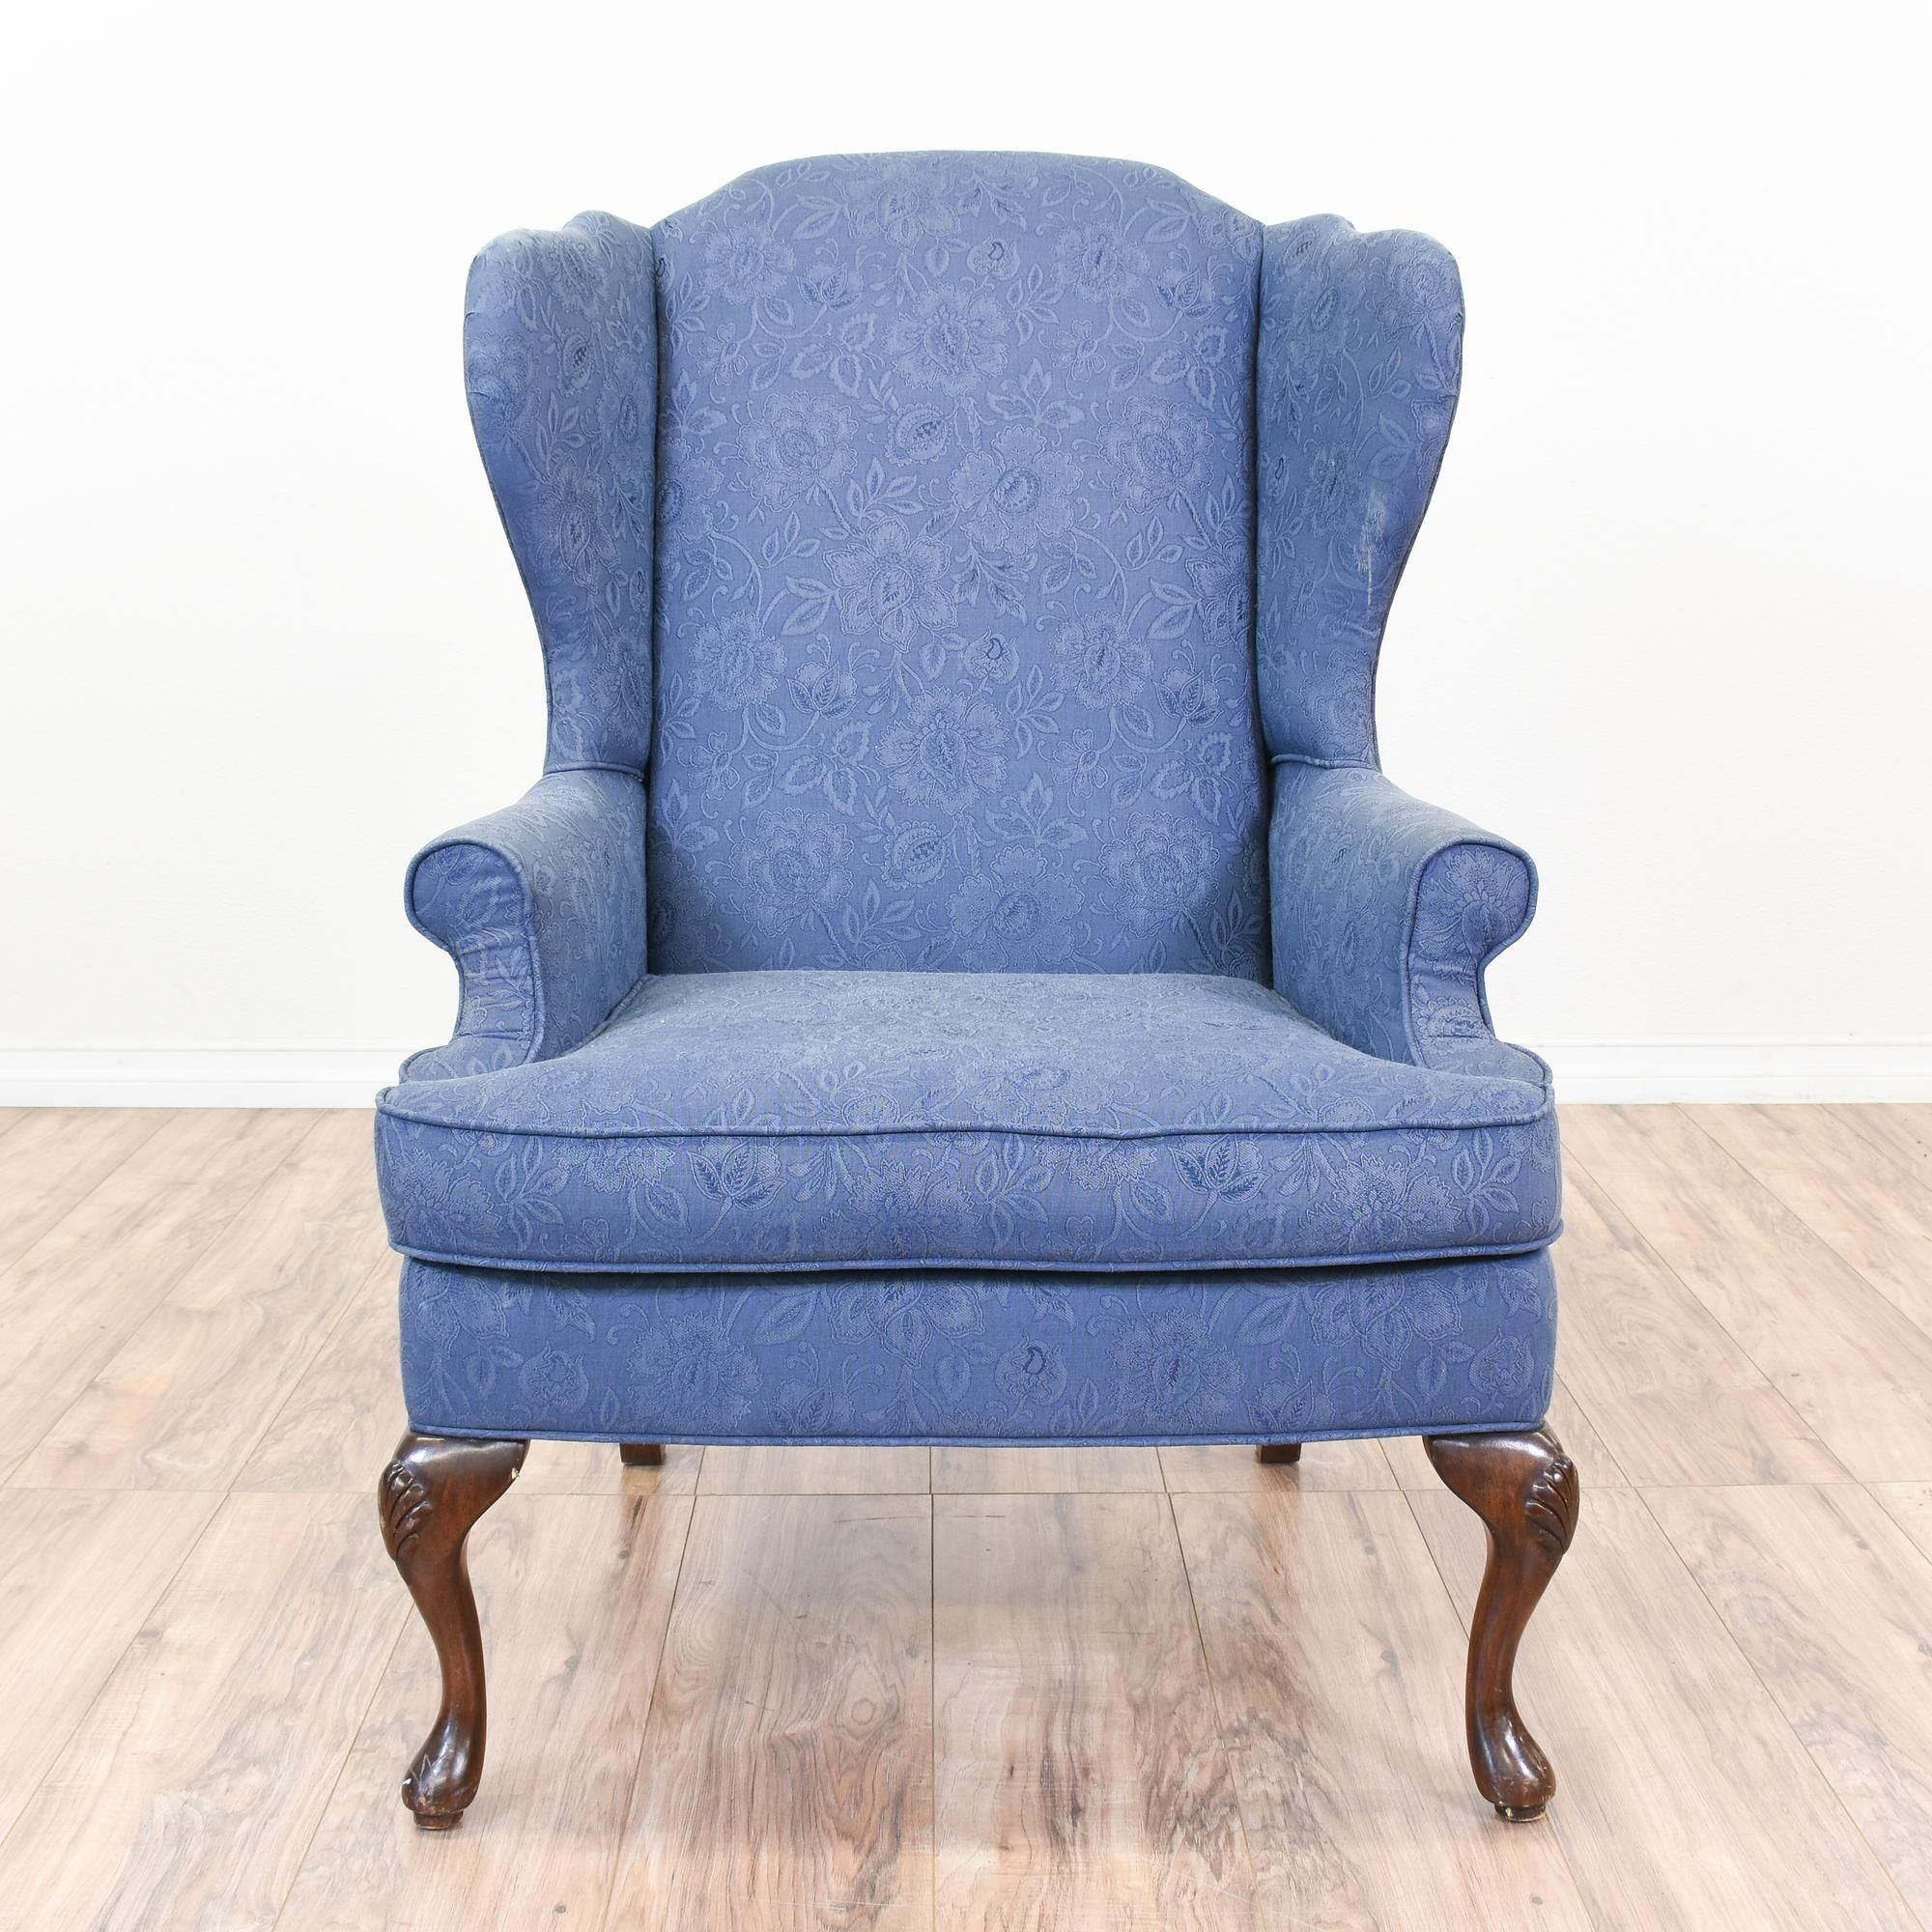 Blue floral upholstered wingback armchair wingback chair